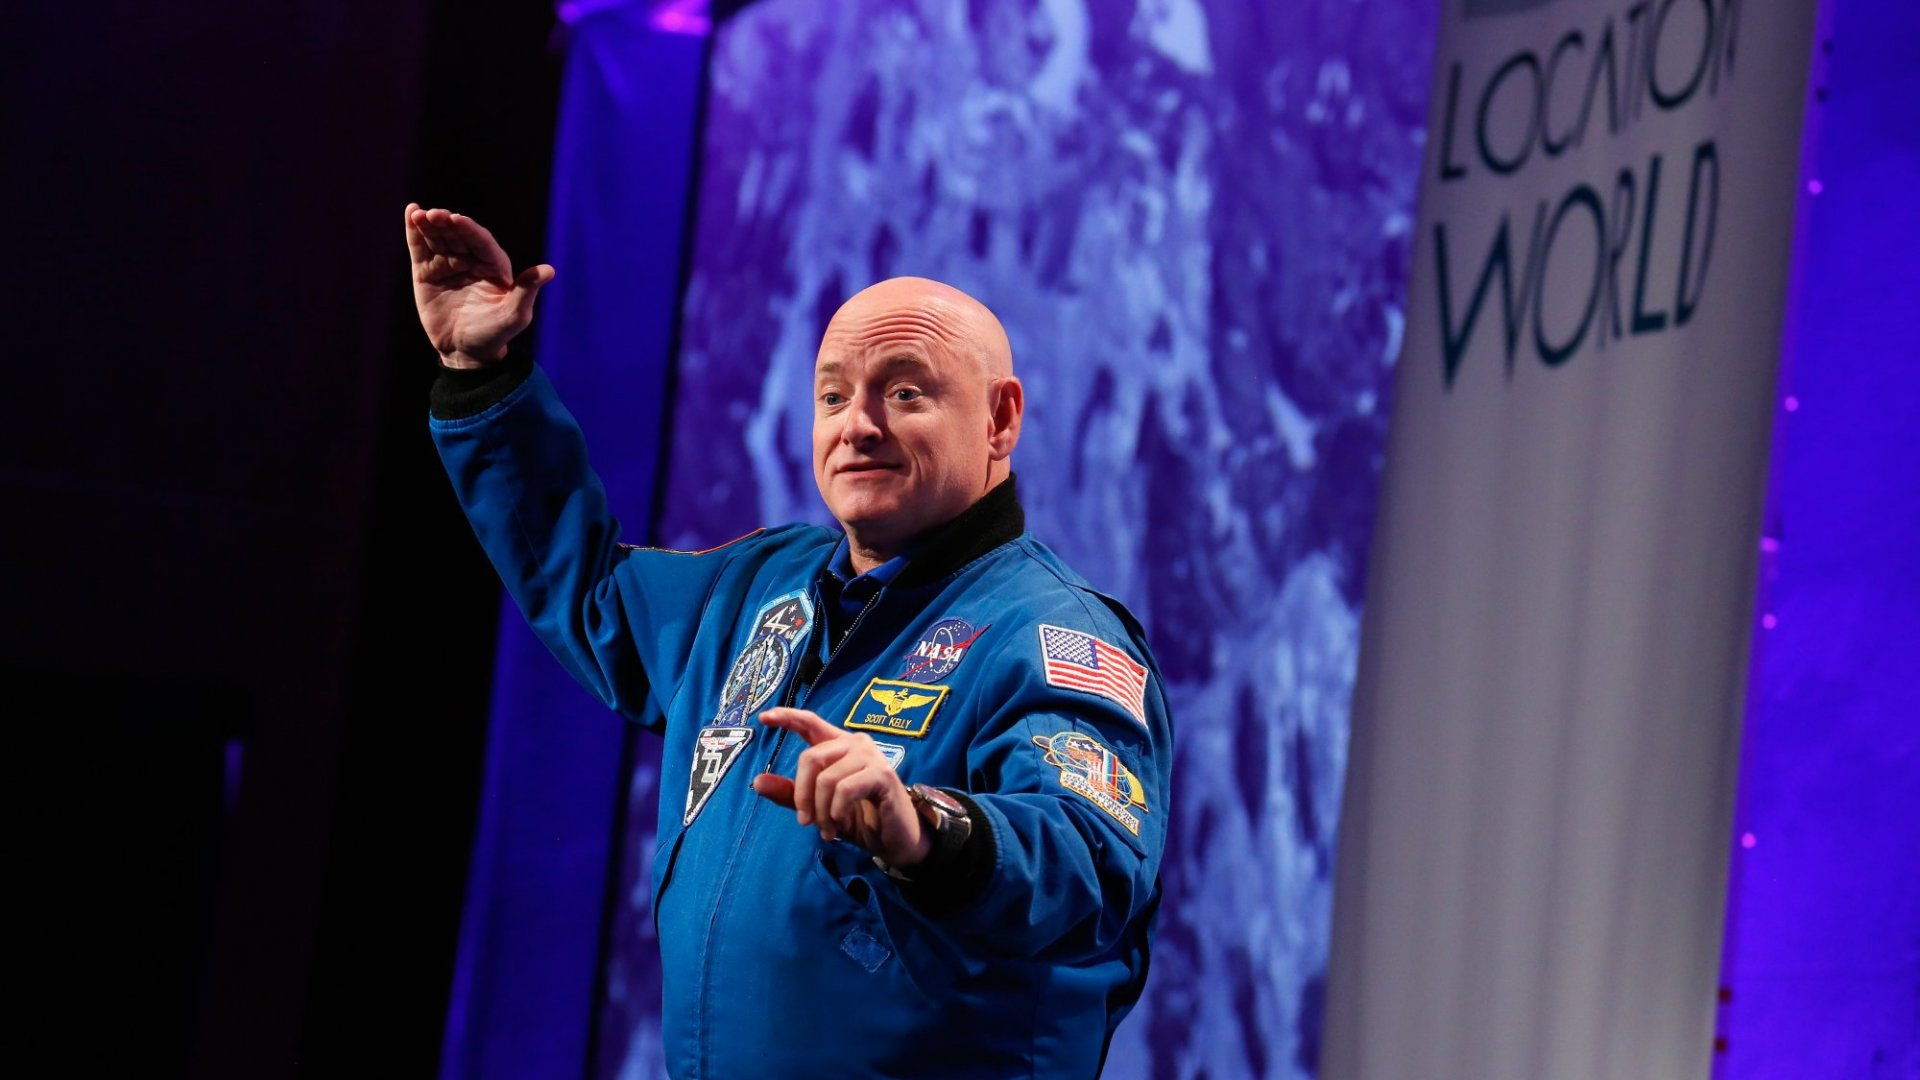 How Astronaut Scott Kelly Used His Skeptics to Fuel His Ambition